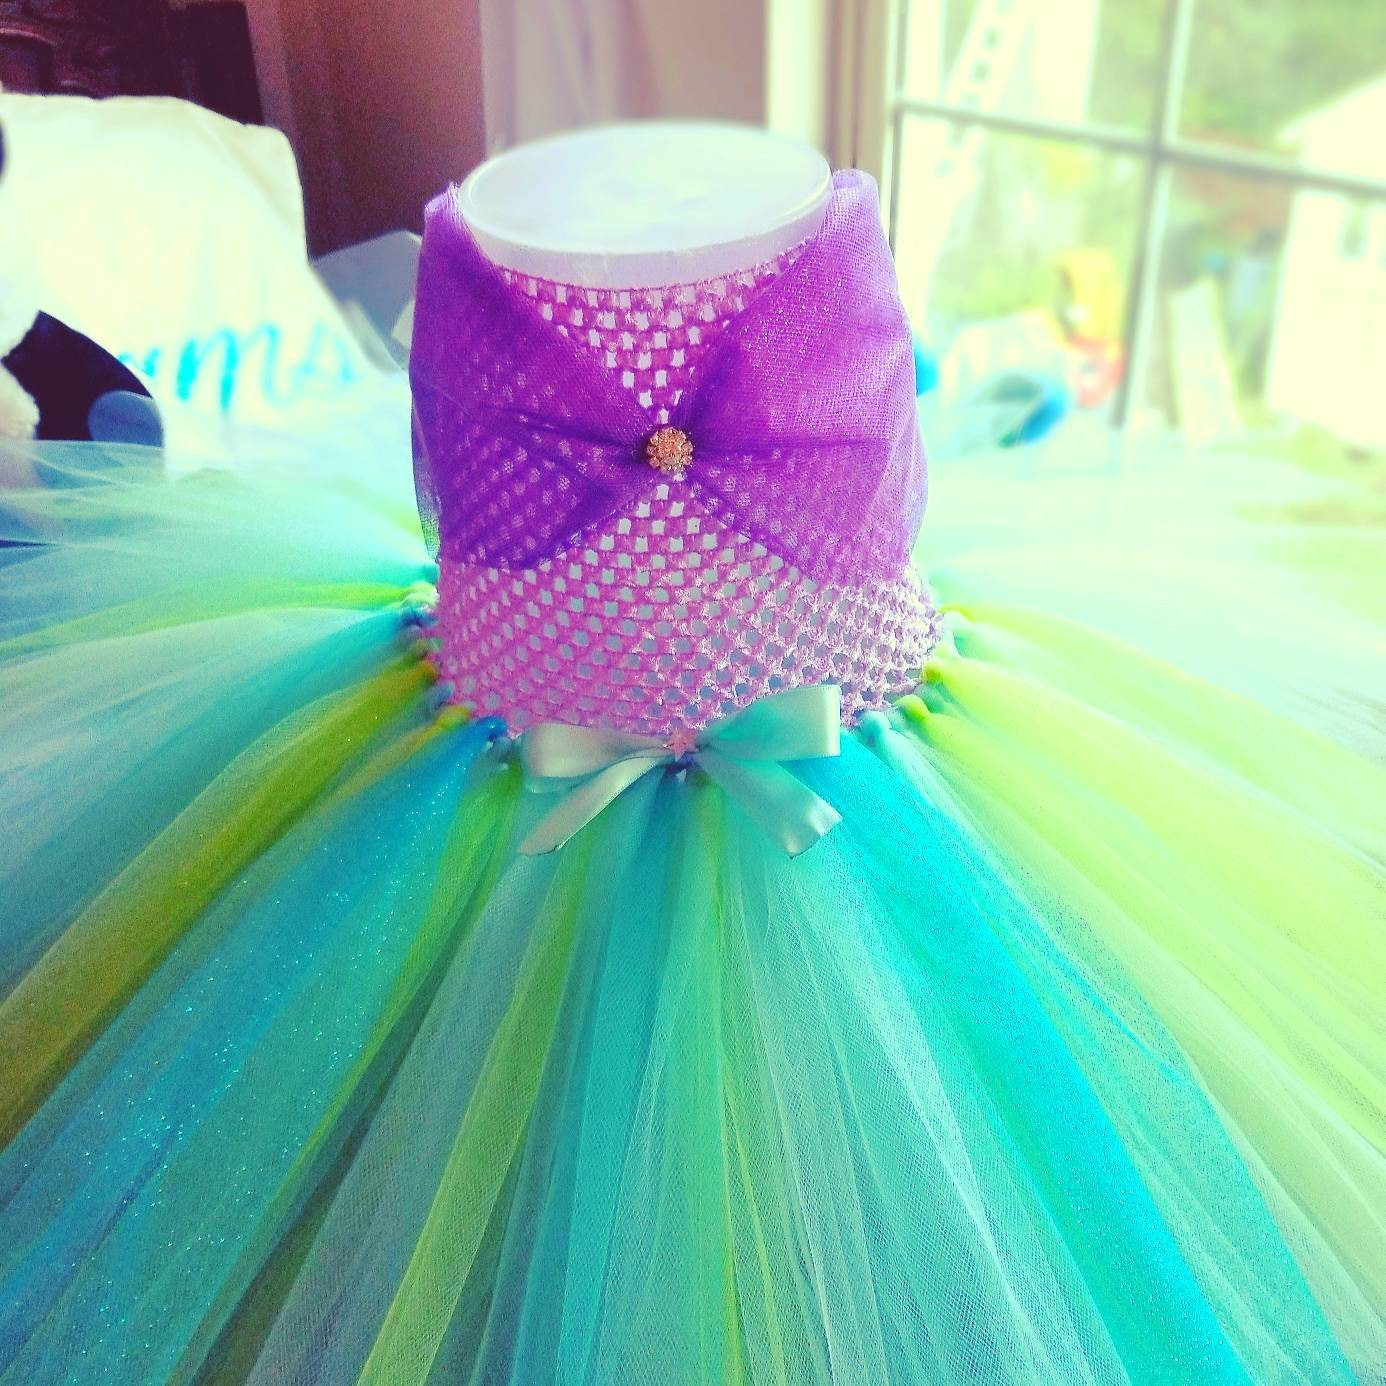 Mermaid dress disney princess dress baby girl costume mermaid